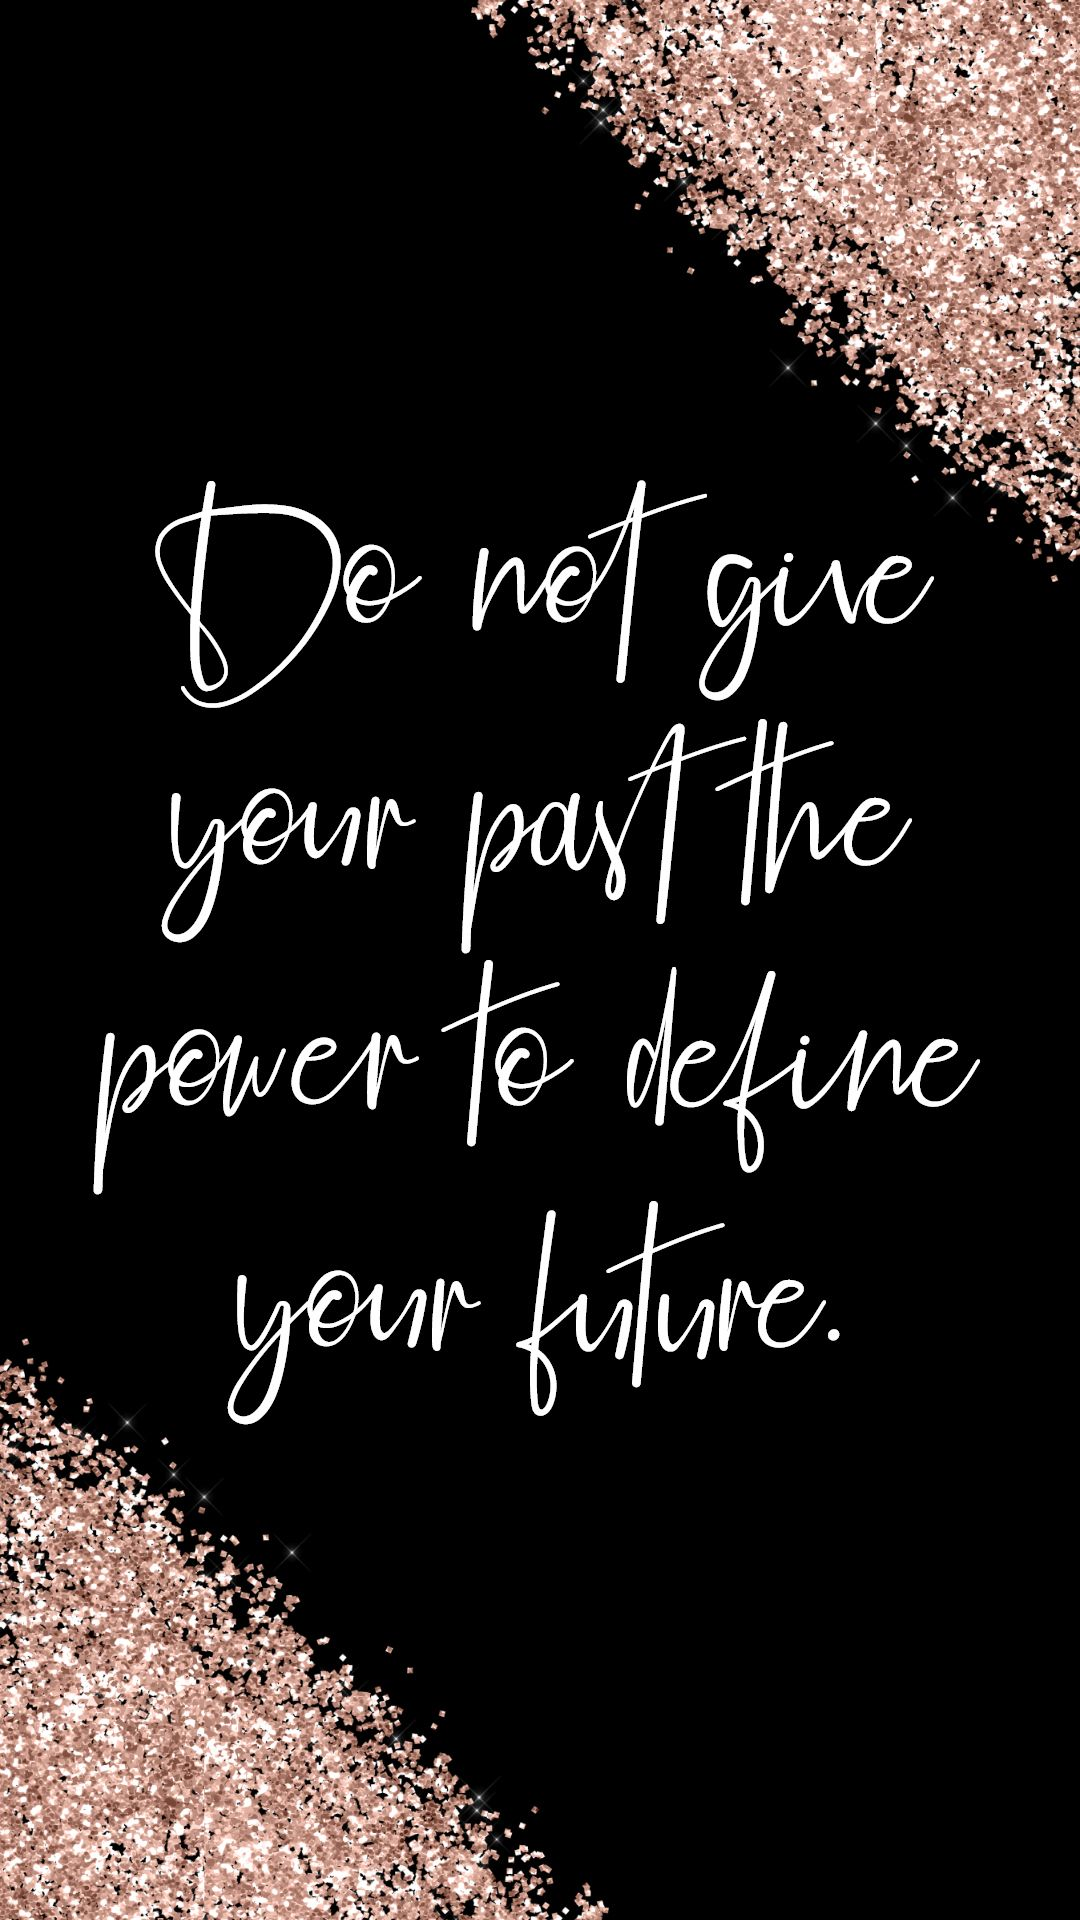 Phone Wallpaper Phone Backgrounds Quotes Free Phone Wallpapers Phone Backgrounds Quotes Inspirational Quotes For Girls Quote Backgrounds